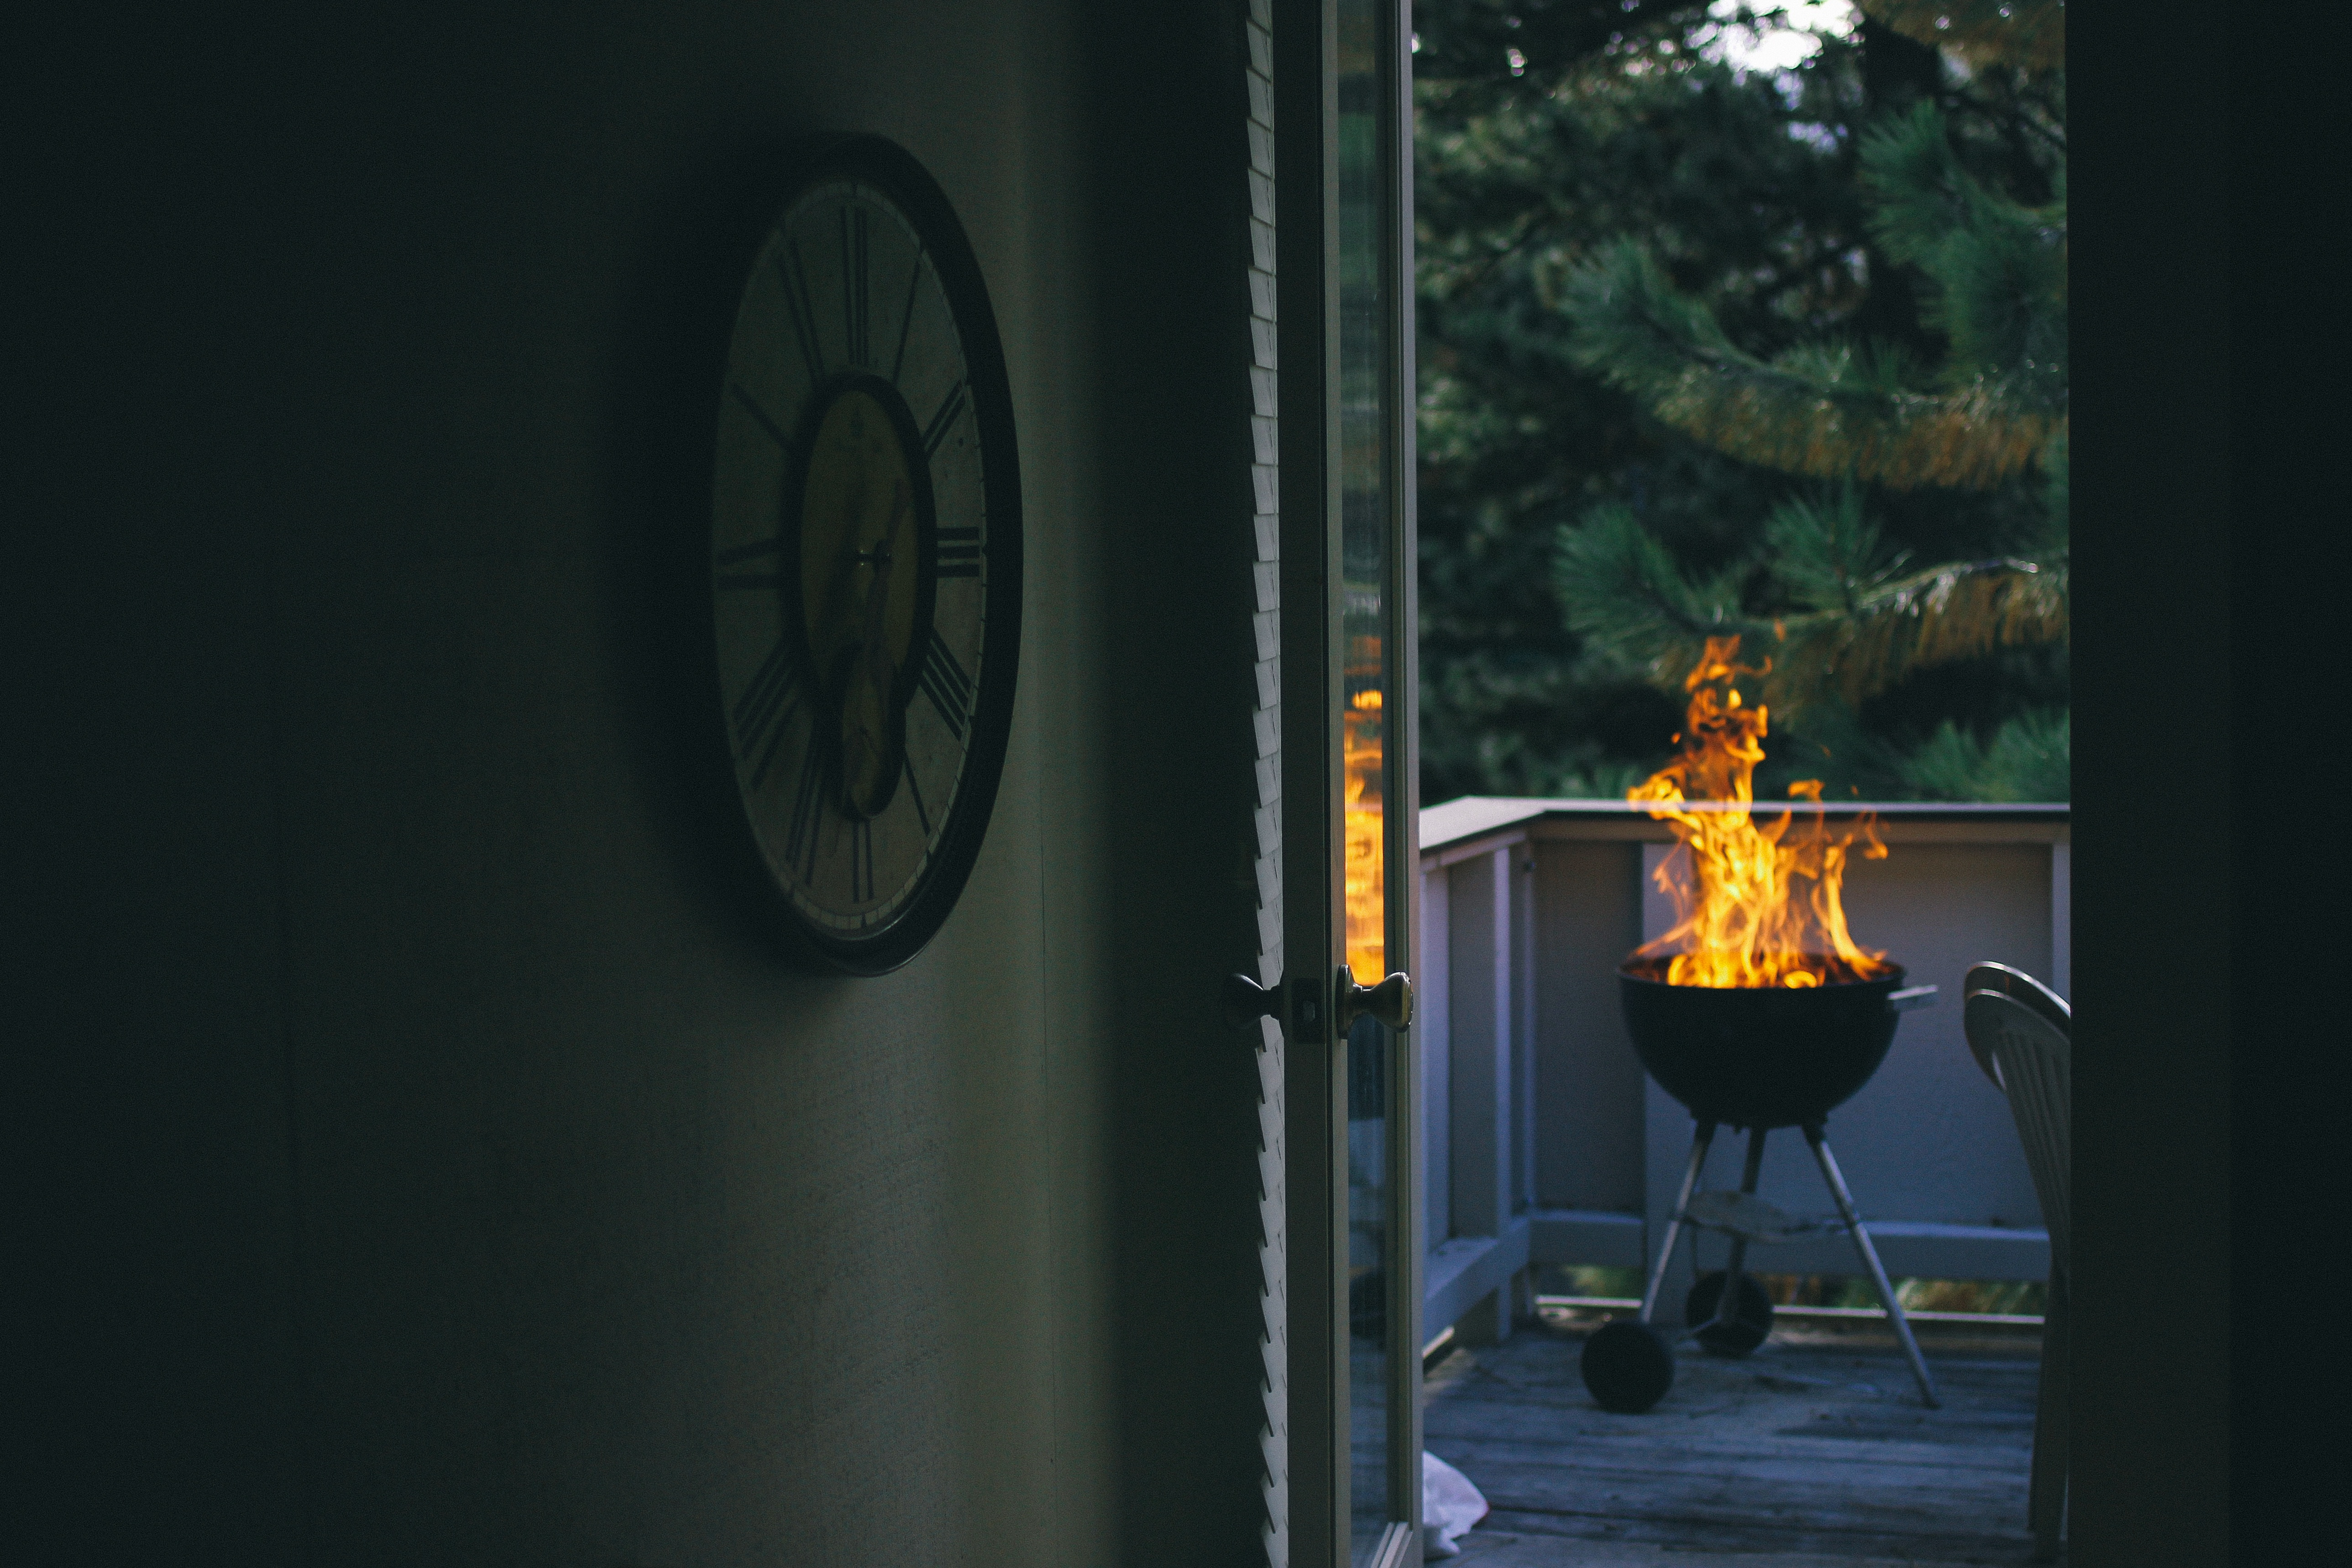 Home, Balcony, Cold, Fire, Fireplace, HQ Photo